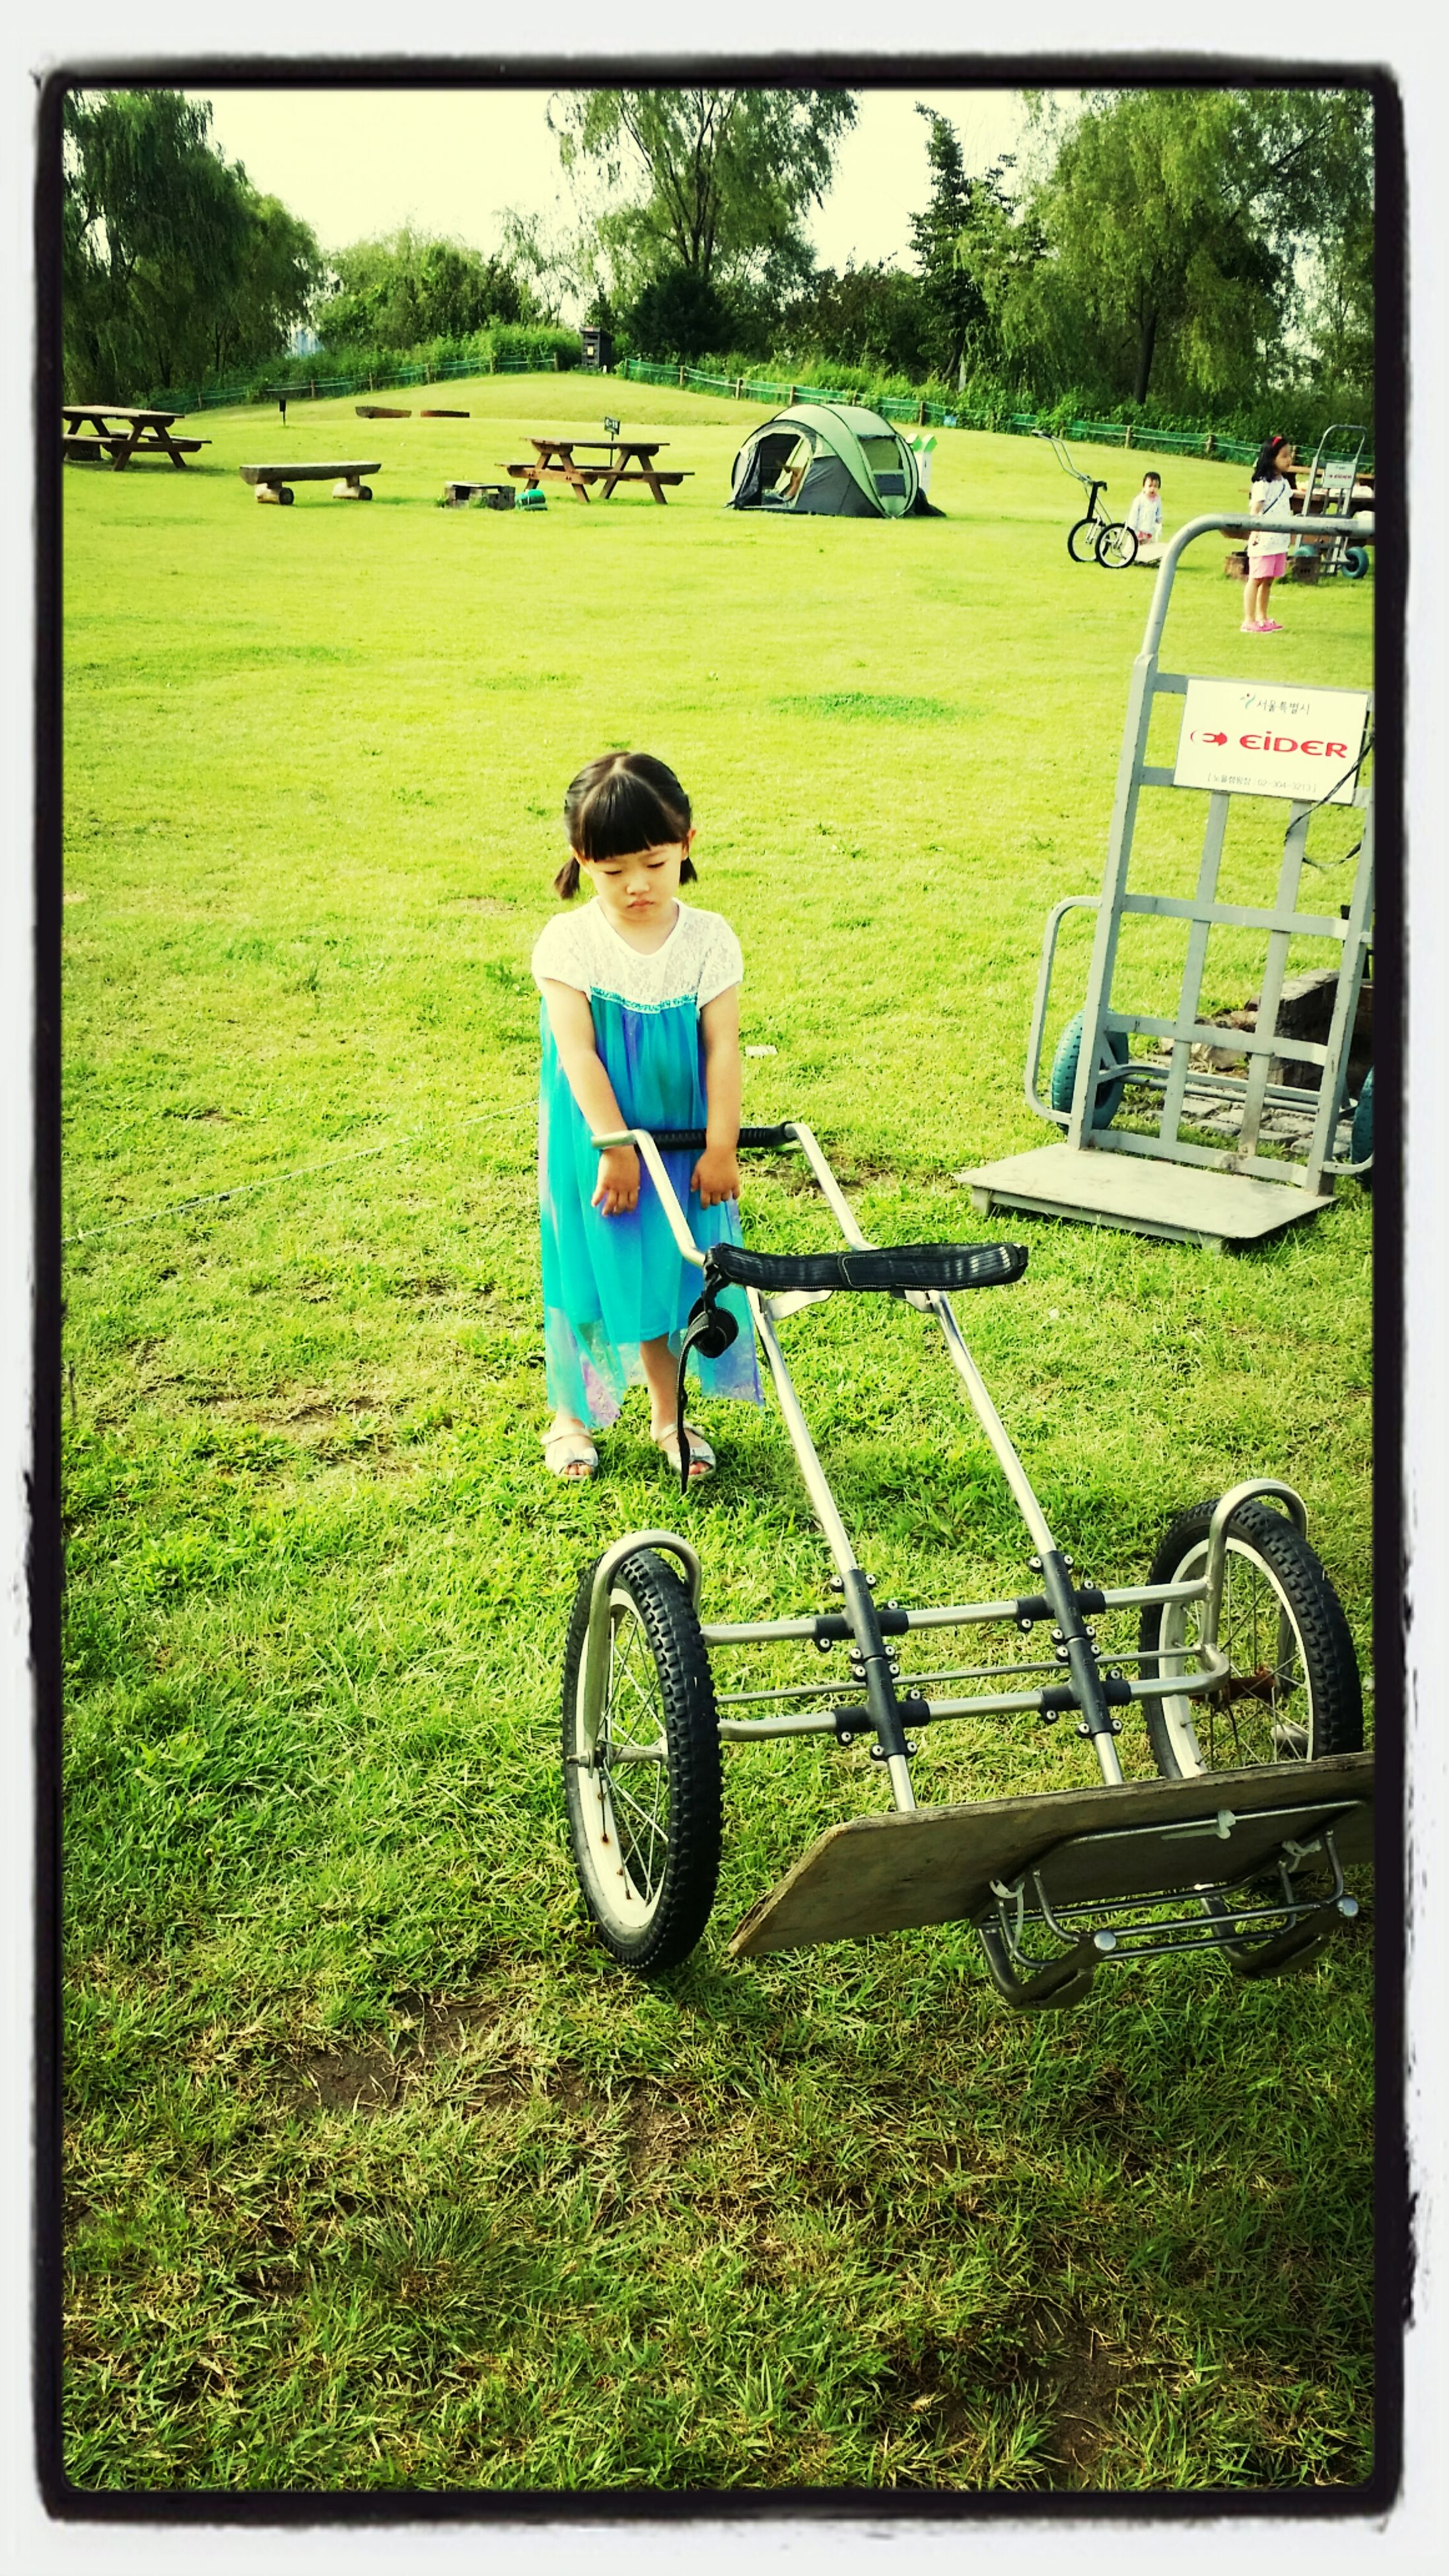 grass, transfer print, bicycle, land vehicle, mode of transport, transportation, auto post production filter, field, childhood, green color, full length, leisure activity, lifestyles, grassy, tree, day, sunlight, men